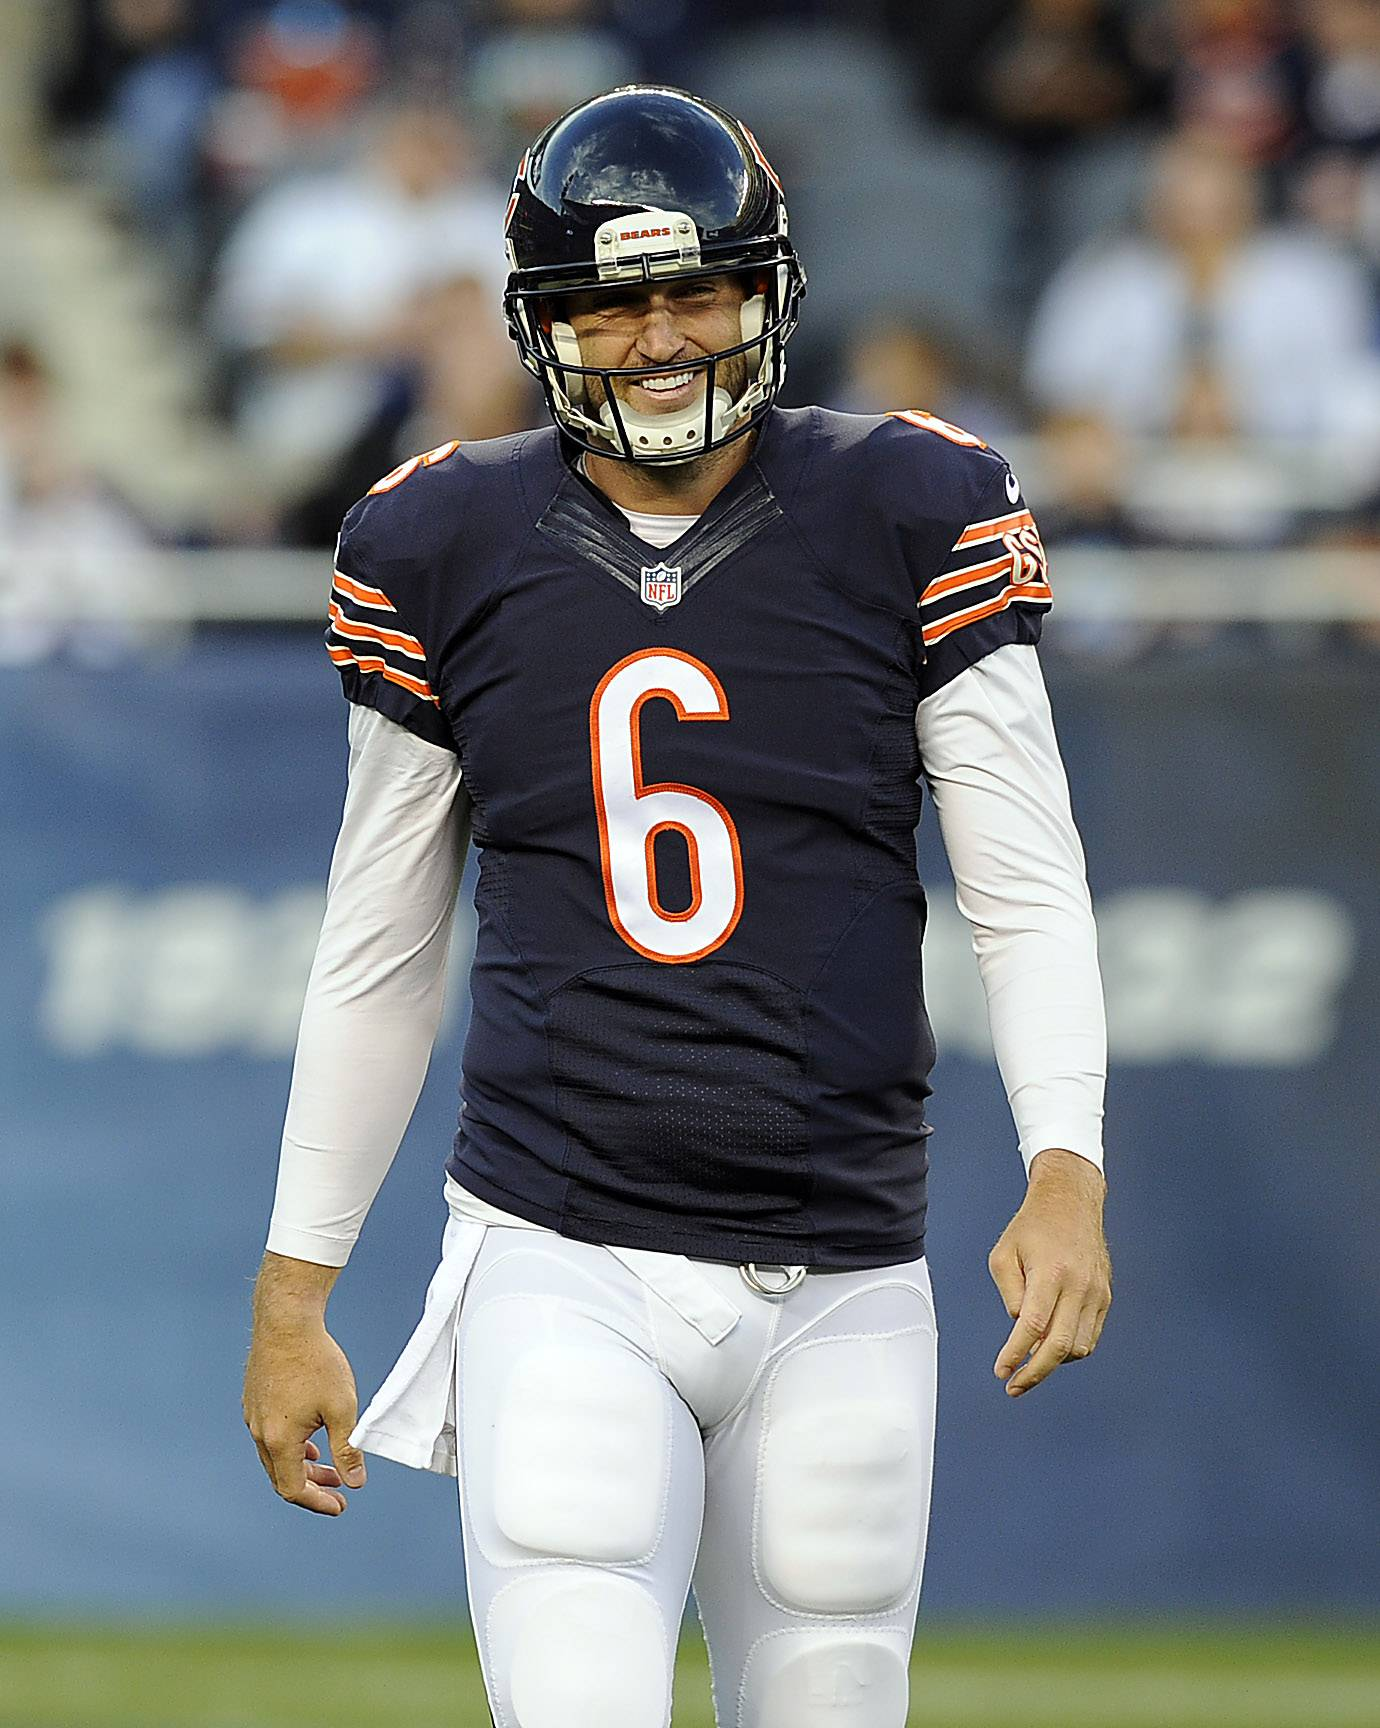 With quarterback Jay Cutler thriving in his second season under coach Marc Trestman, the B